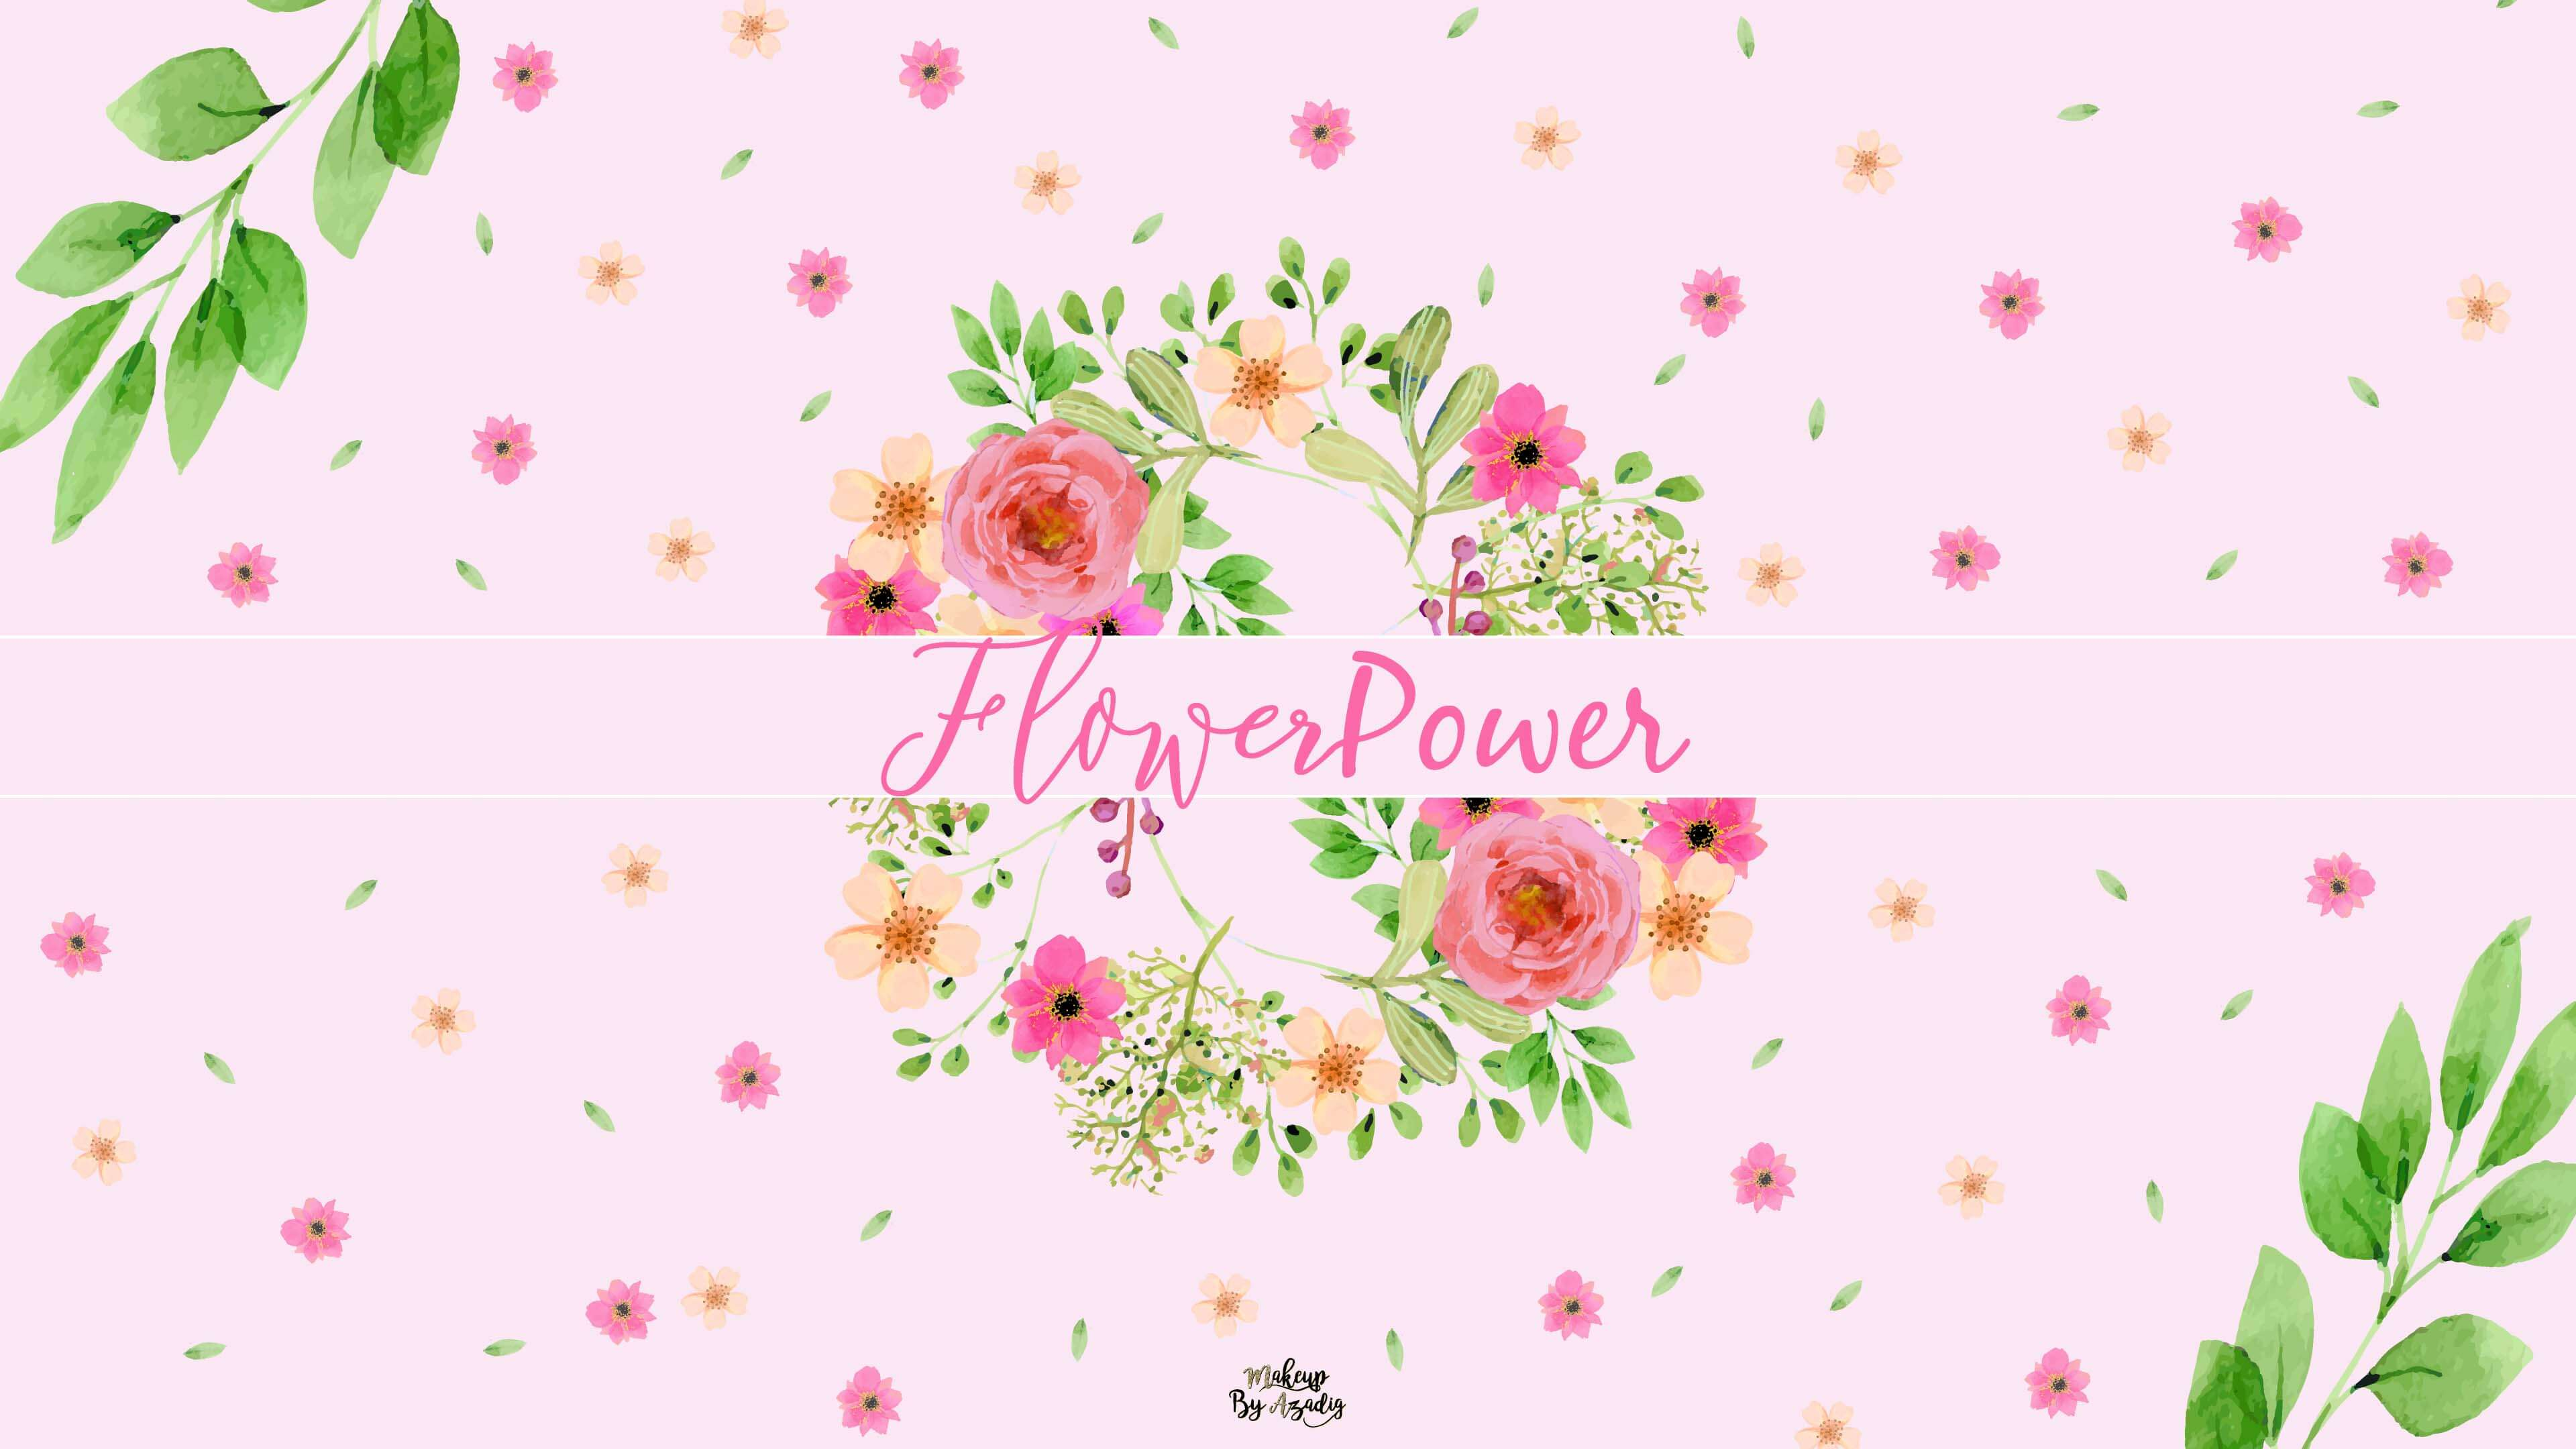 fond-decran-wallpaper-printemps-fleurs-flower-power-couronne-rose-girly-ordinateur-mac-macbook-imac-pc-makeupbyazadig-tendance